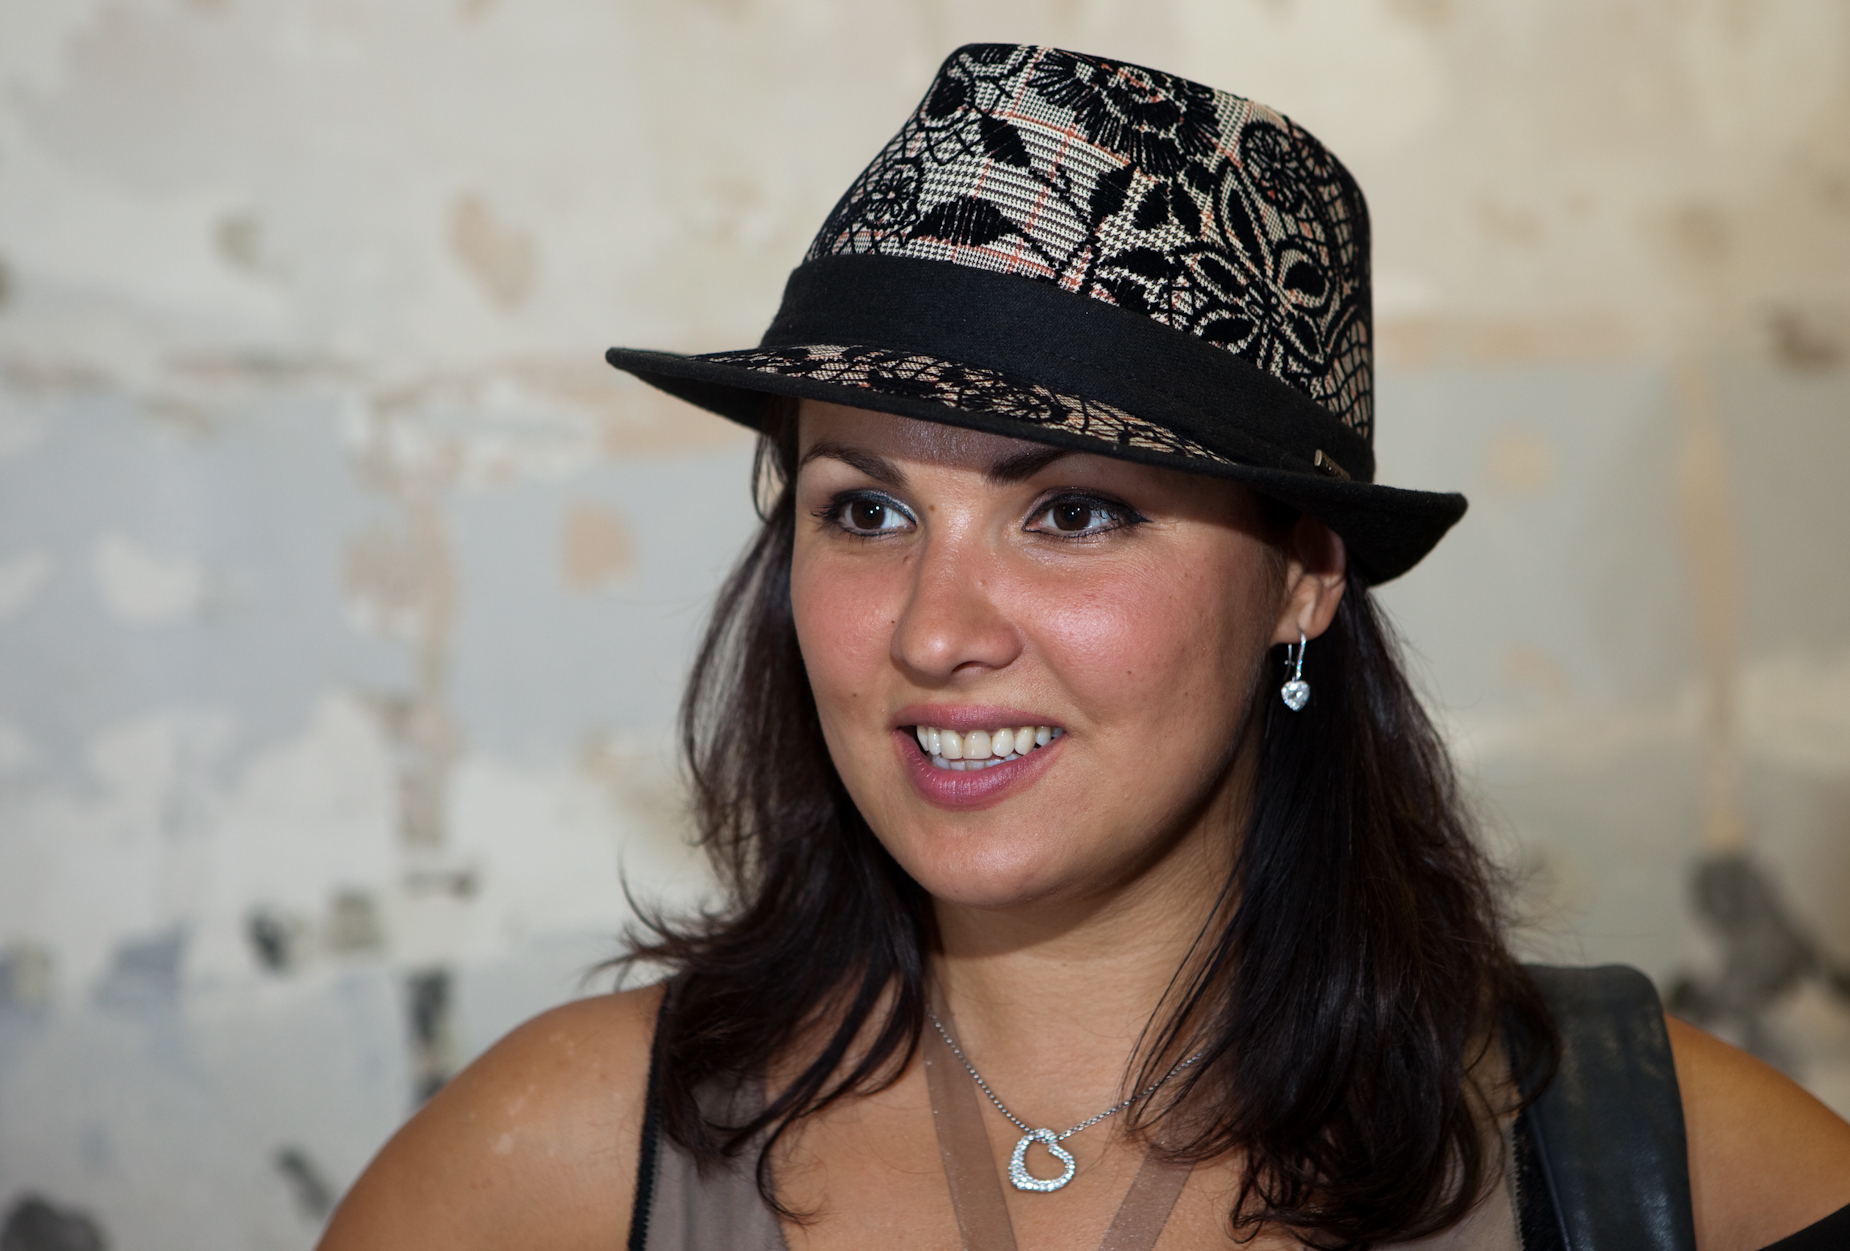 Russian Opera diva Anna Netrebko speaks candidly about son's autism